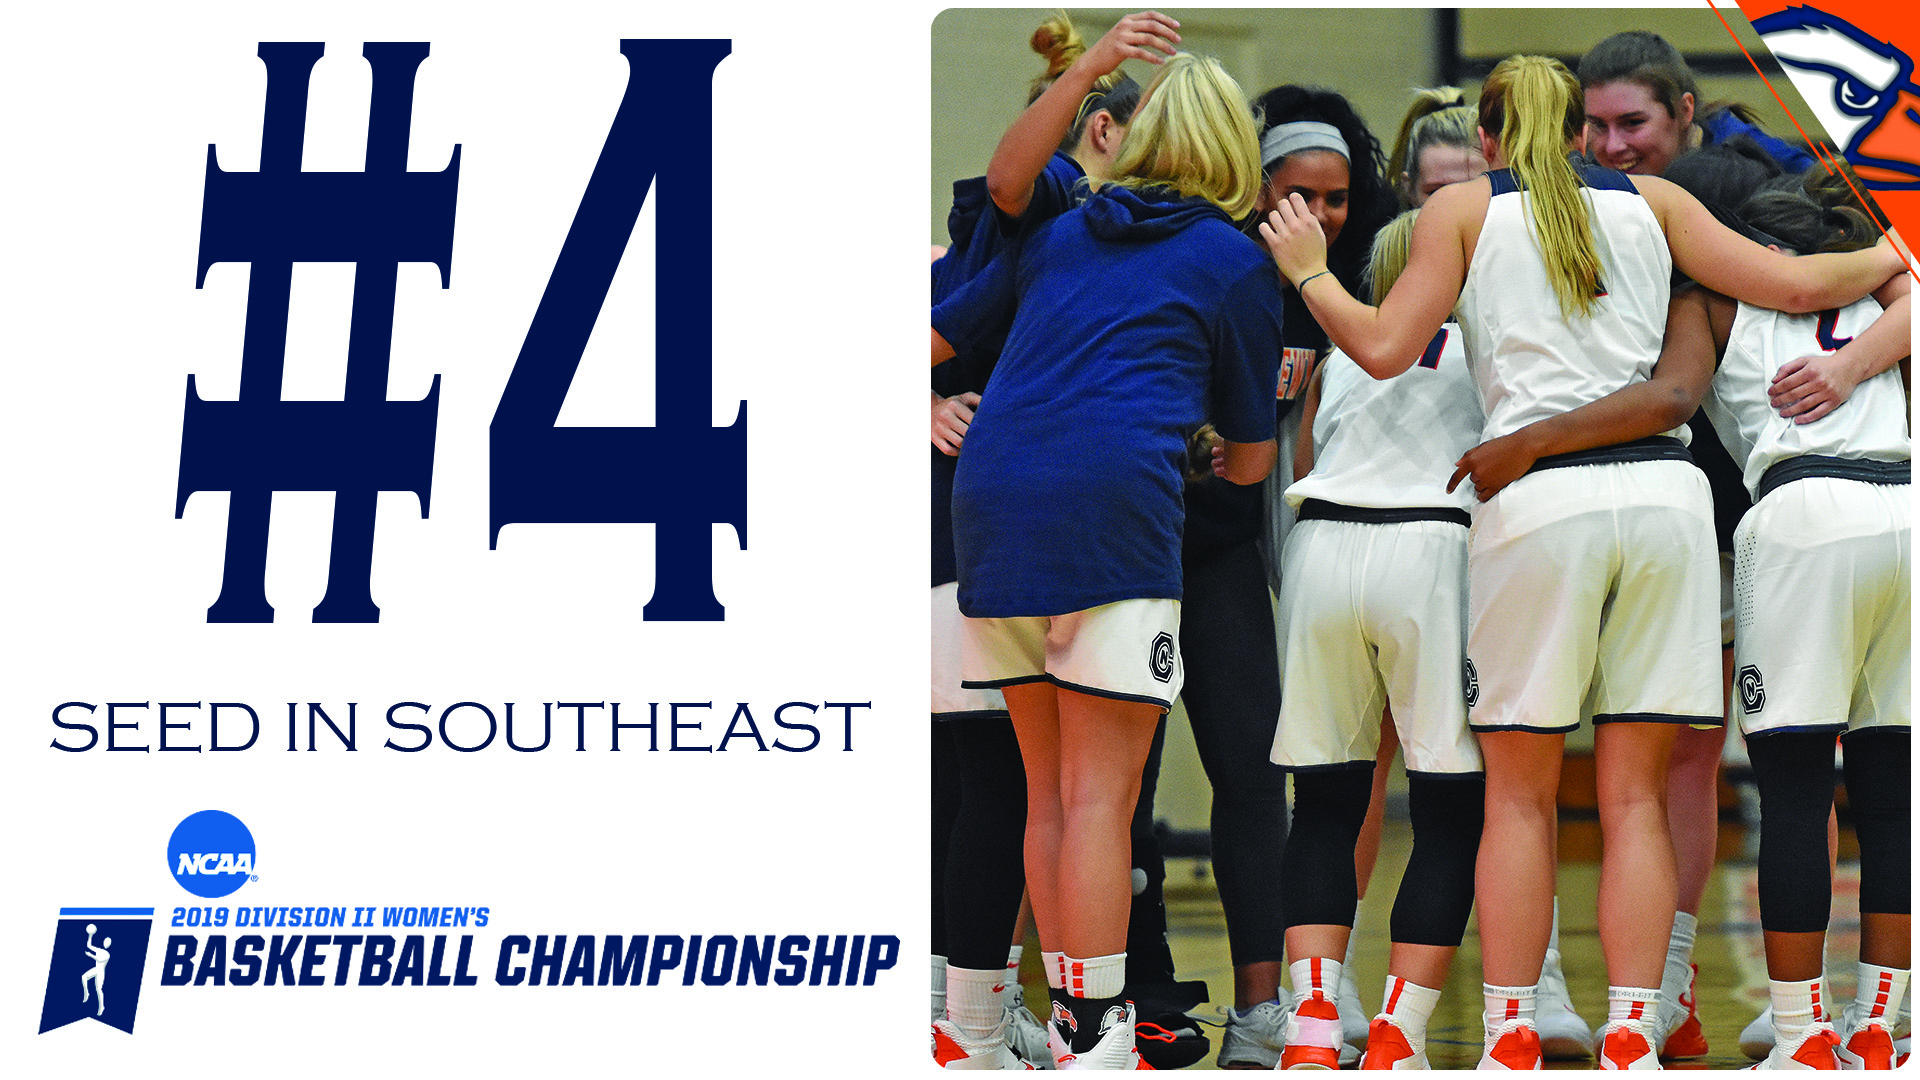 Mincey's squad seals No. 4 seed in Southeast Region